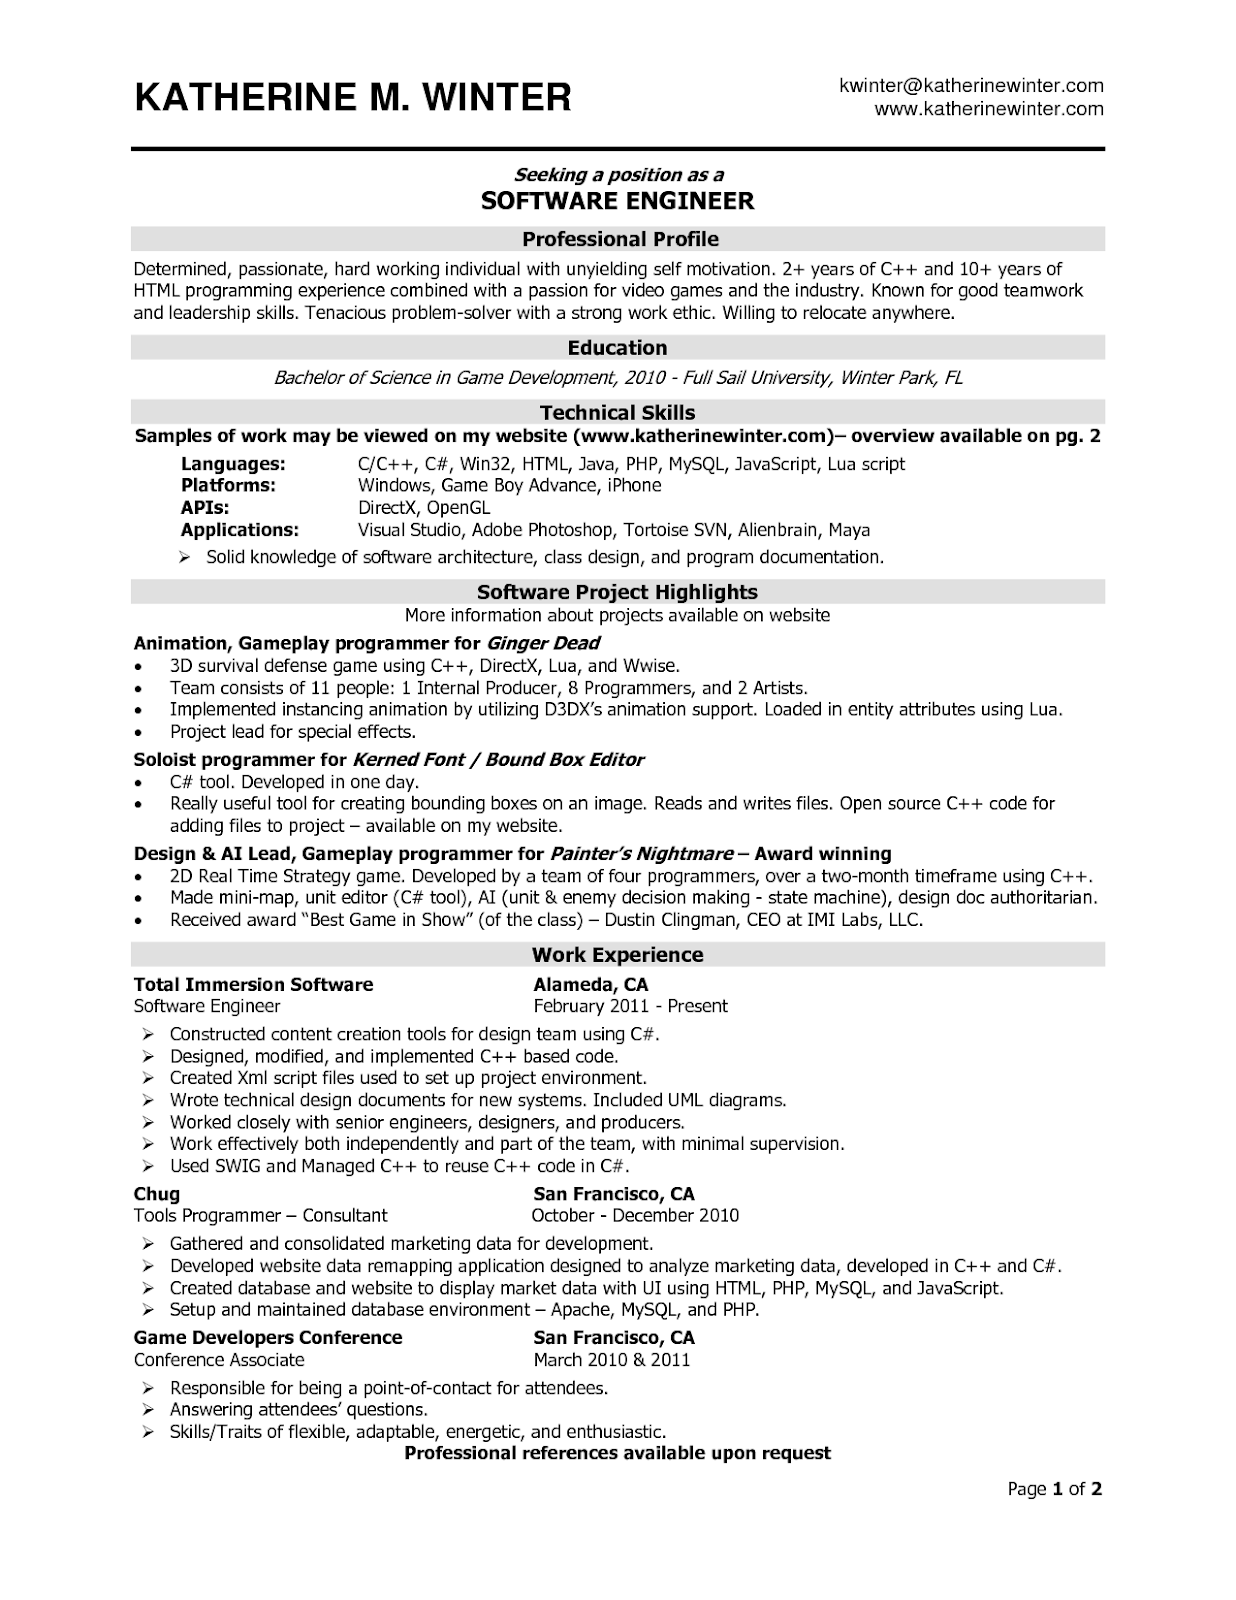 sample resume for network administrator network security engineer resume samples entry level network security engineer resume